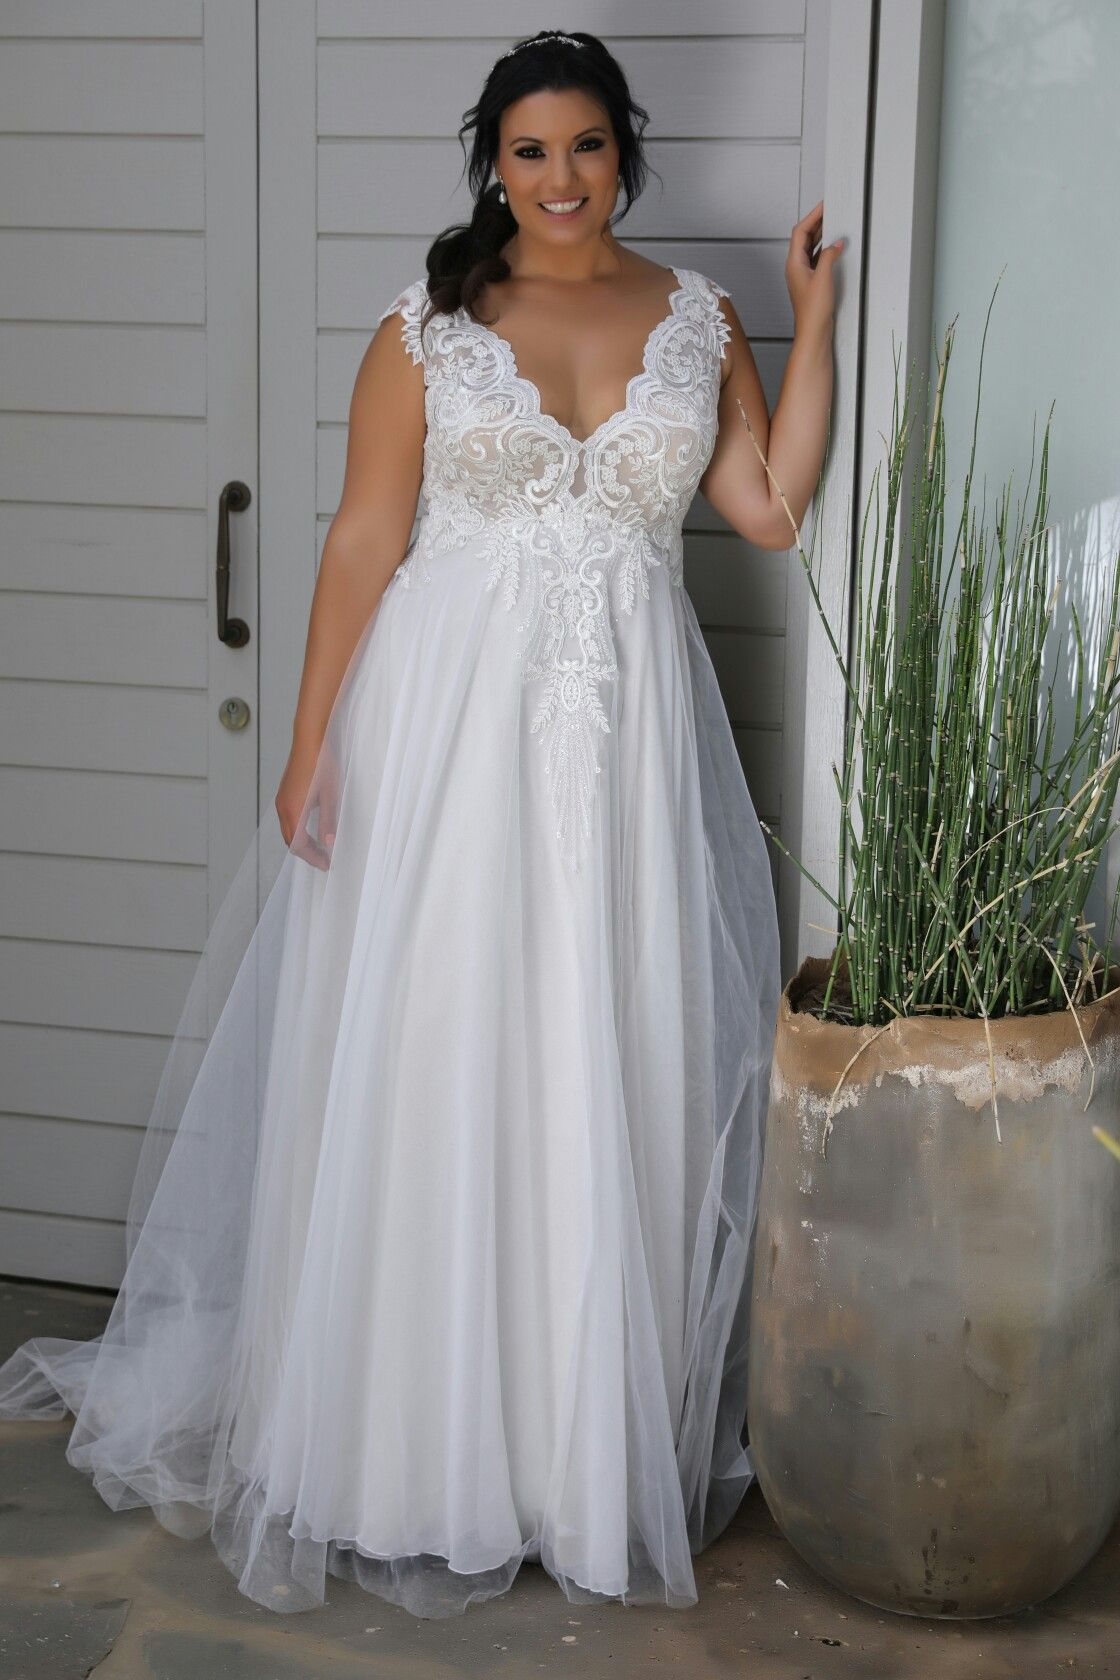 Pin on Plus size wedding gowns THE BEST!